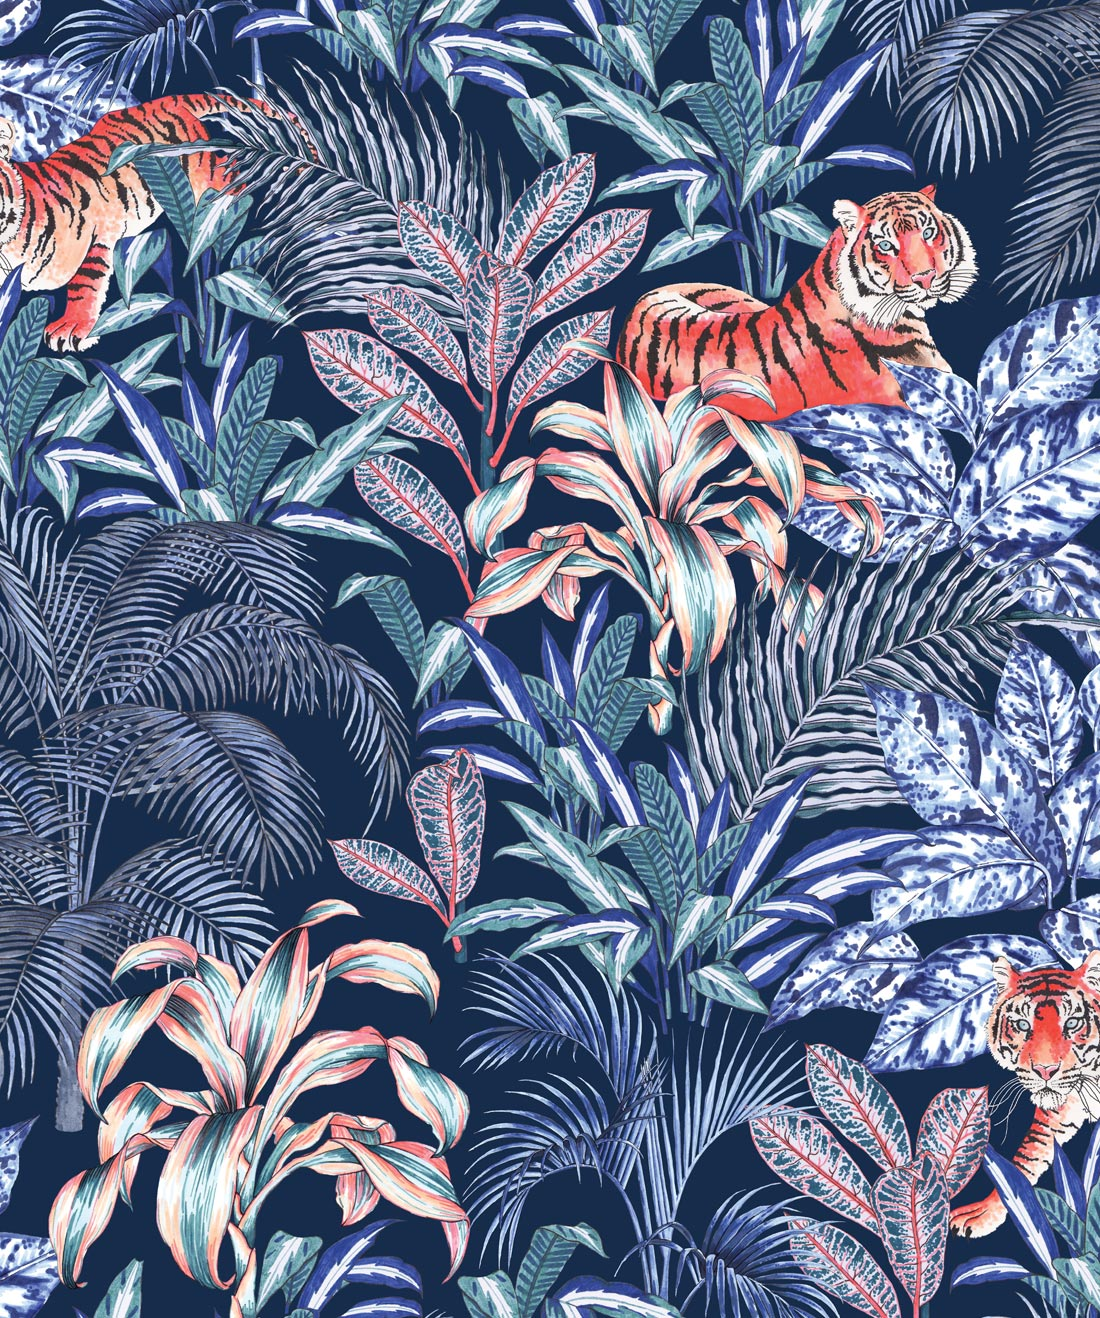 Jungle Tiger Wallpaper